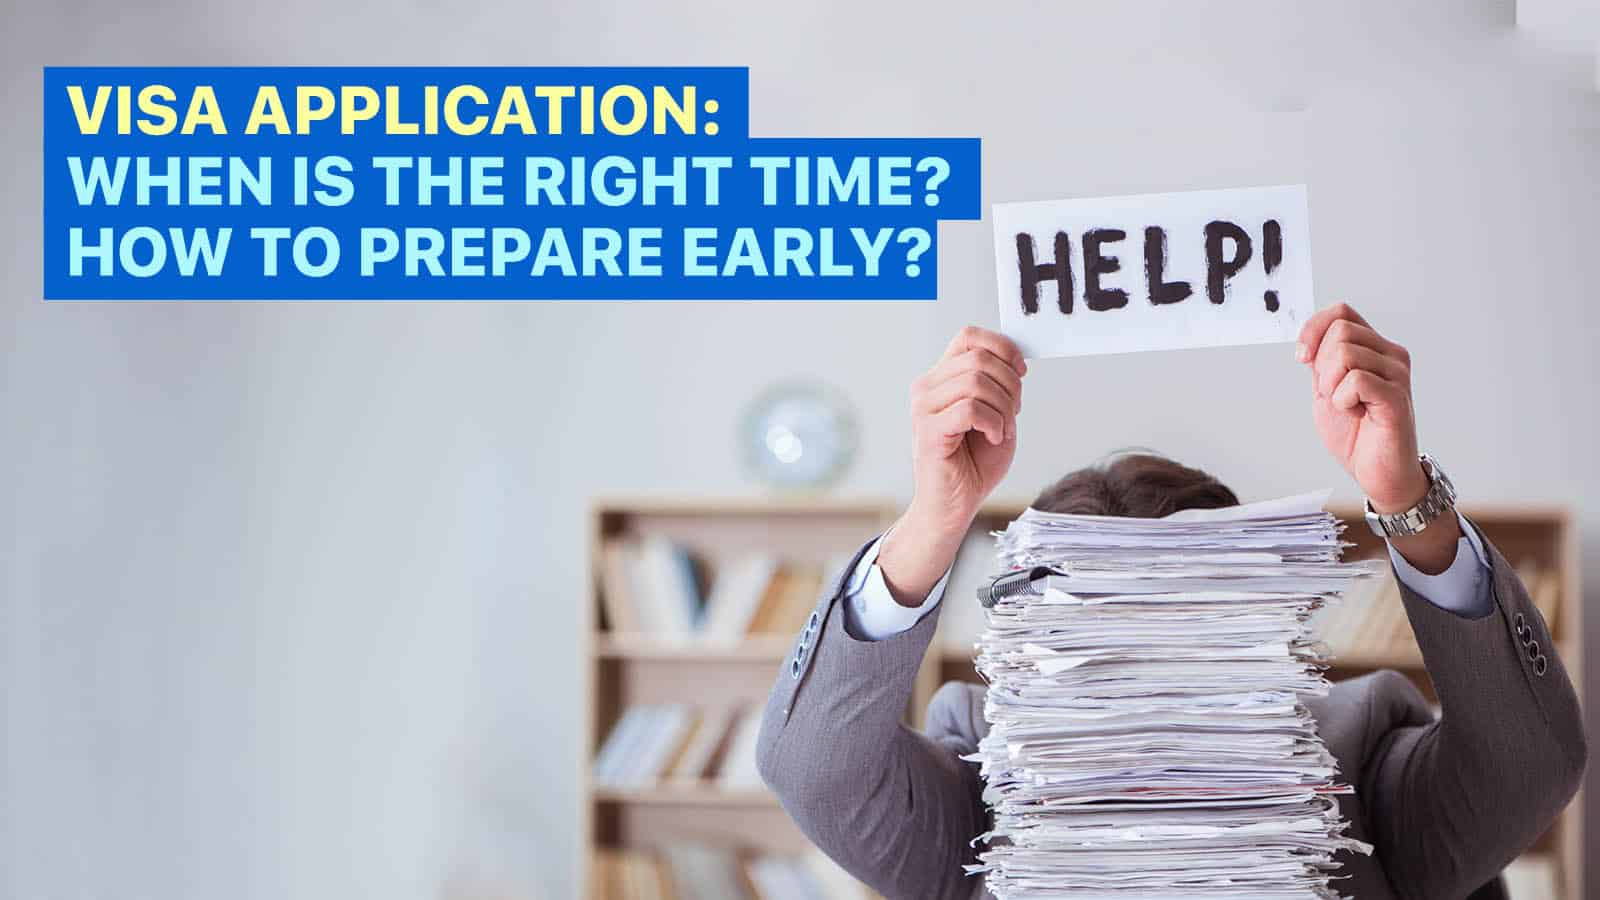 The Road to VISA APPLICATION APPROVAL: When is the Right Time? How to Prepare Early?